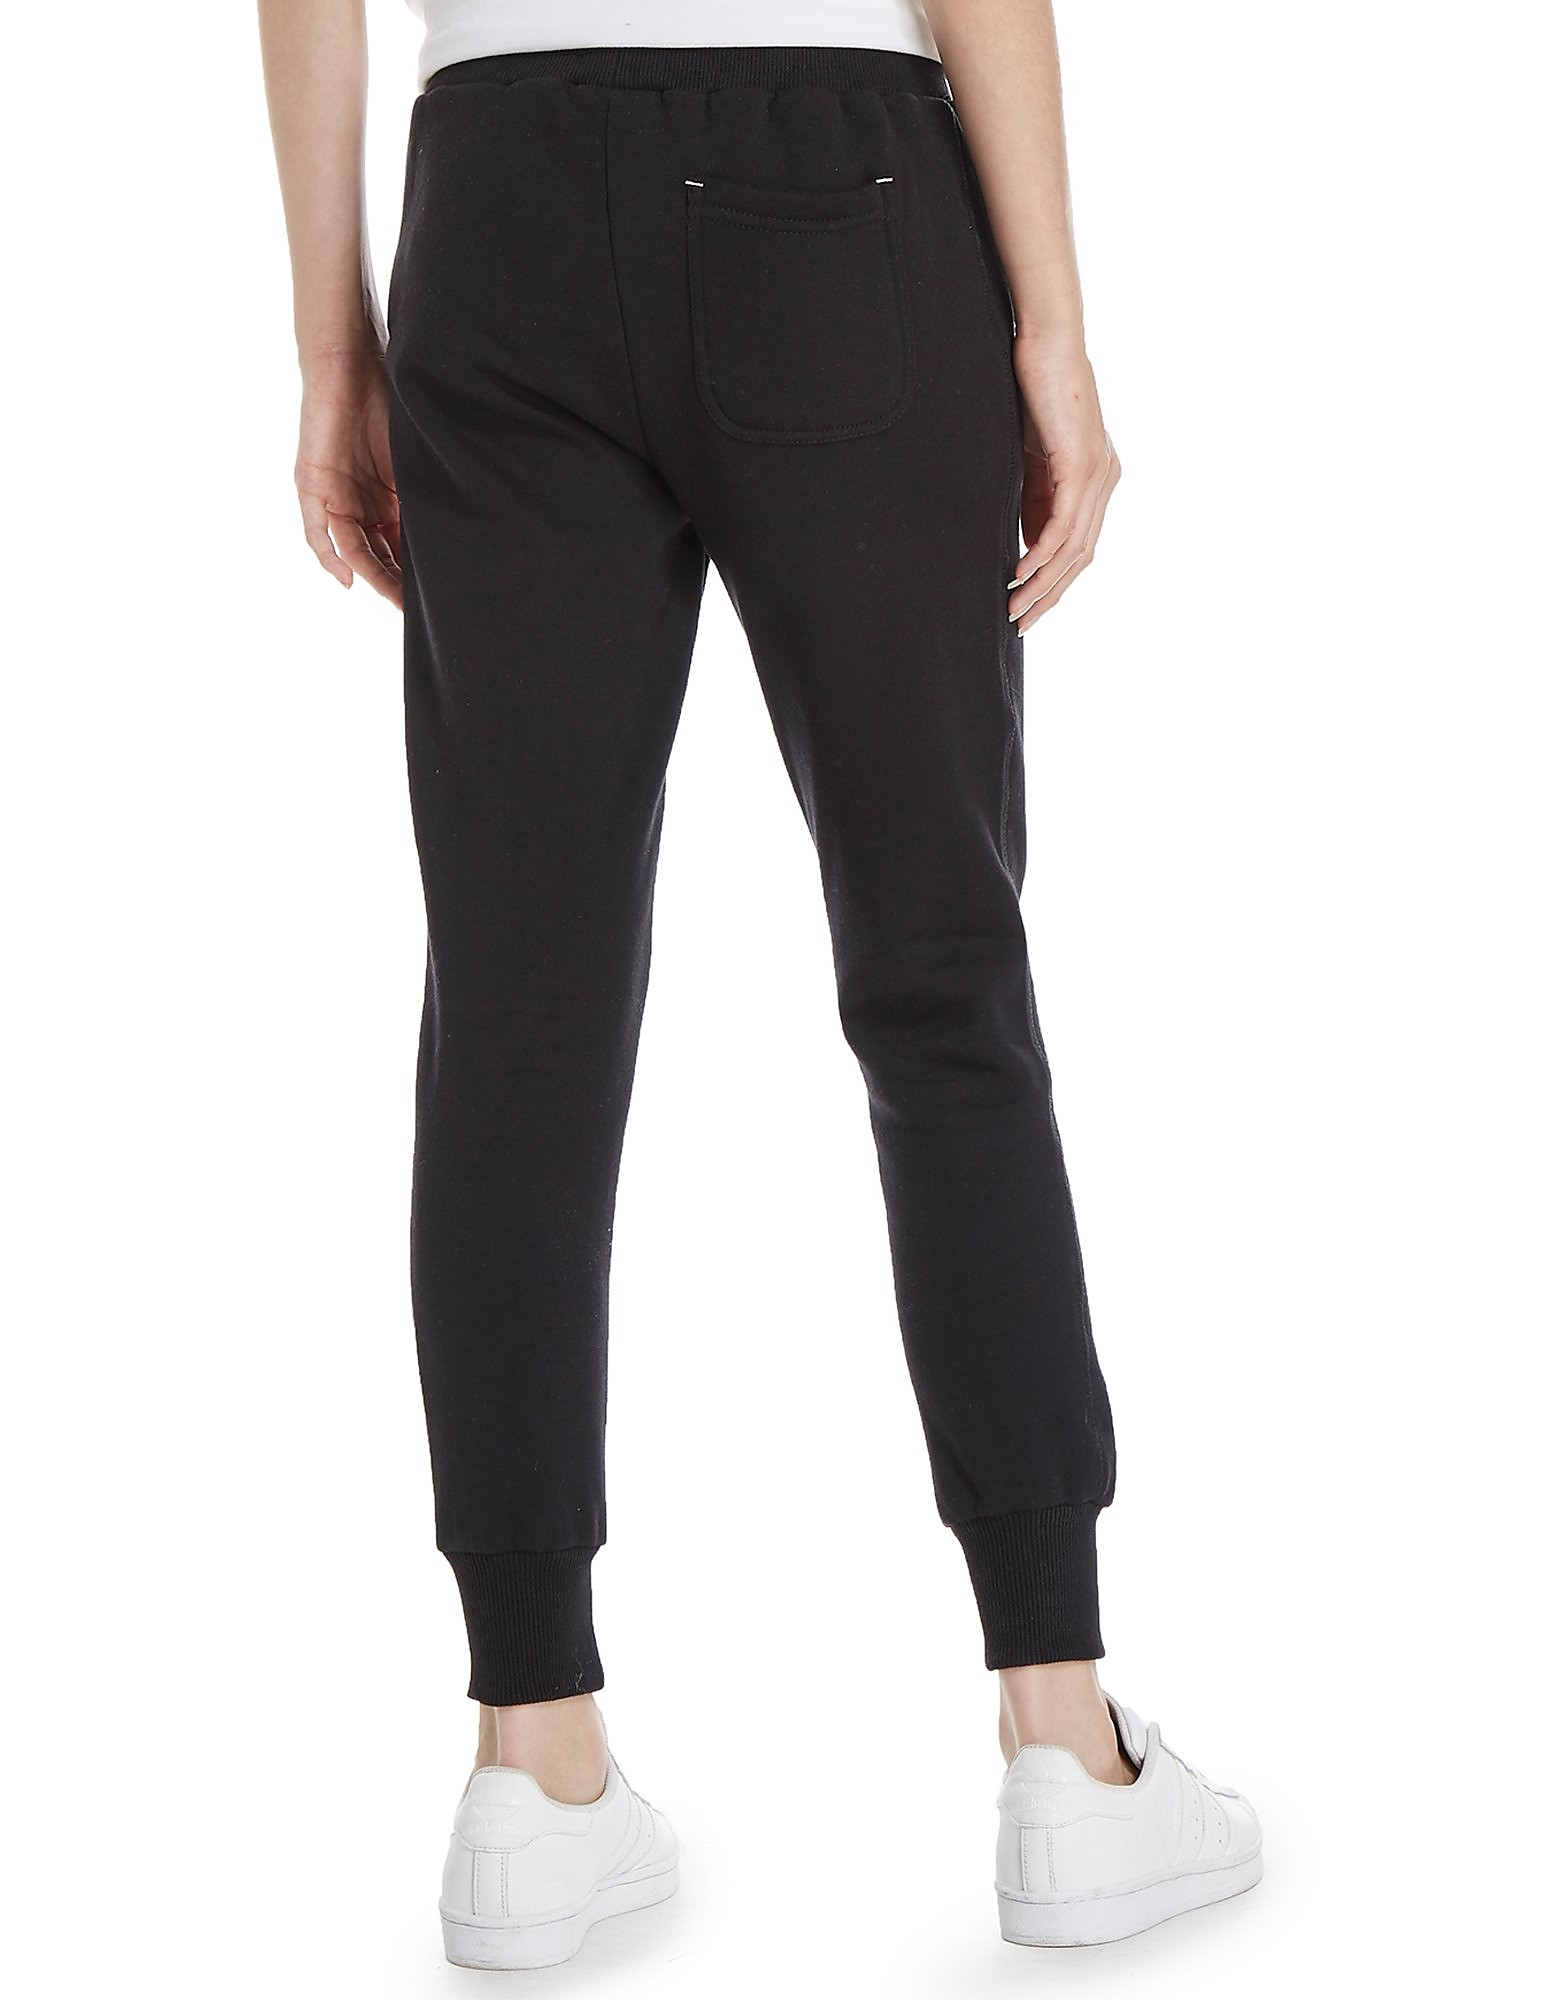 McKenzie Girls' Emma Jogging Pants Junior